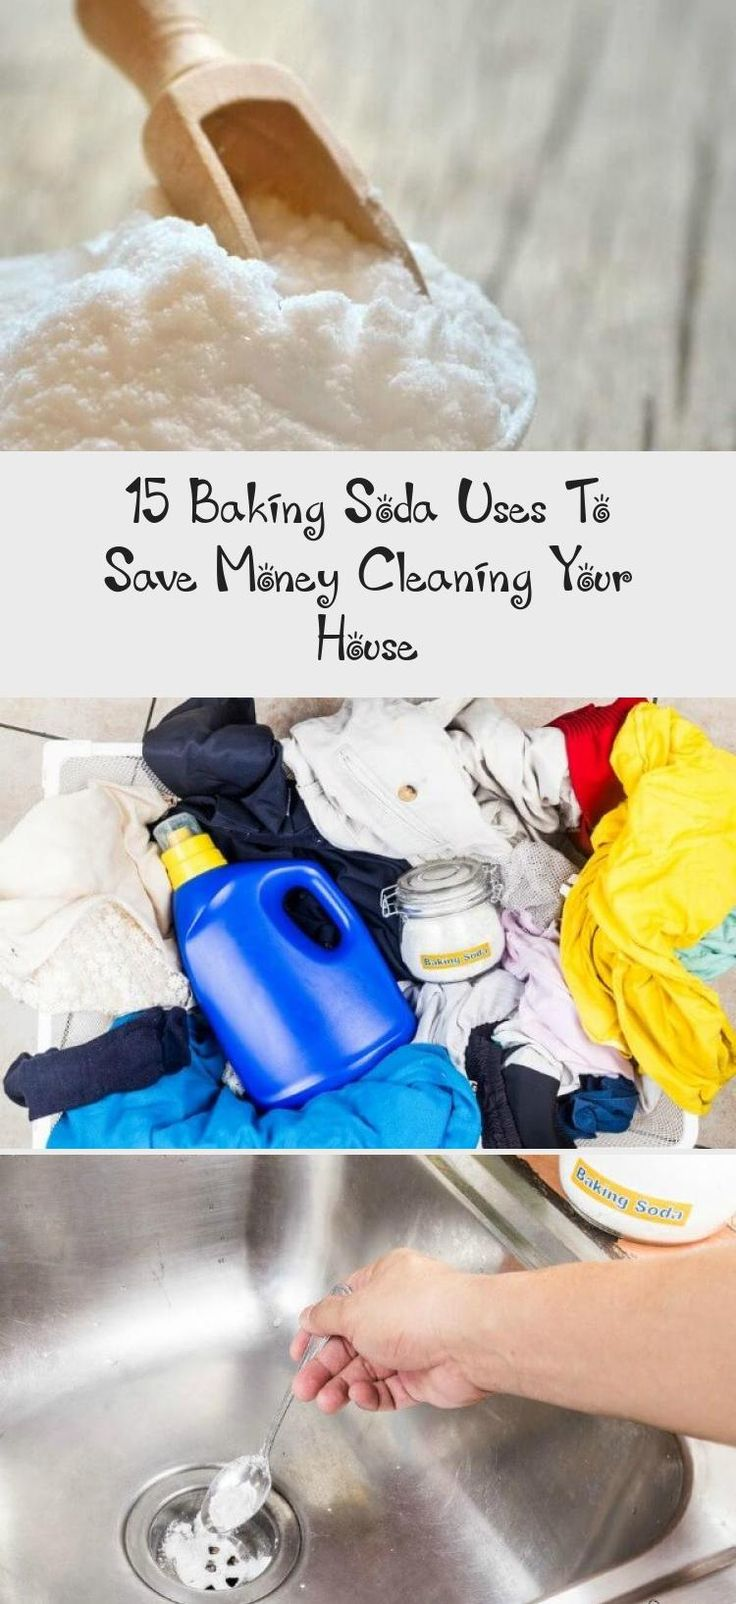 15 Great Uses for Baking Soda to clean your home that are